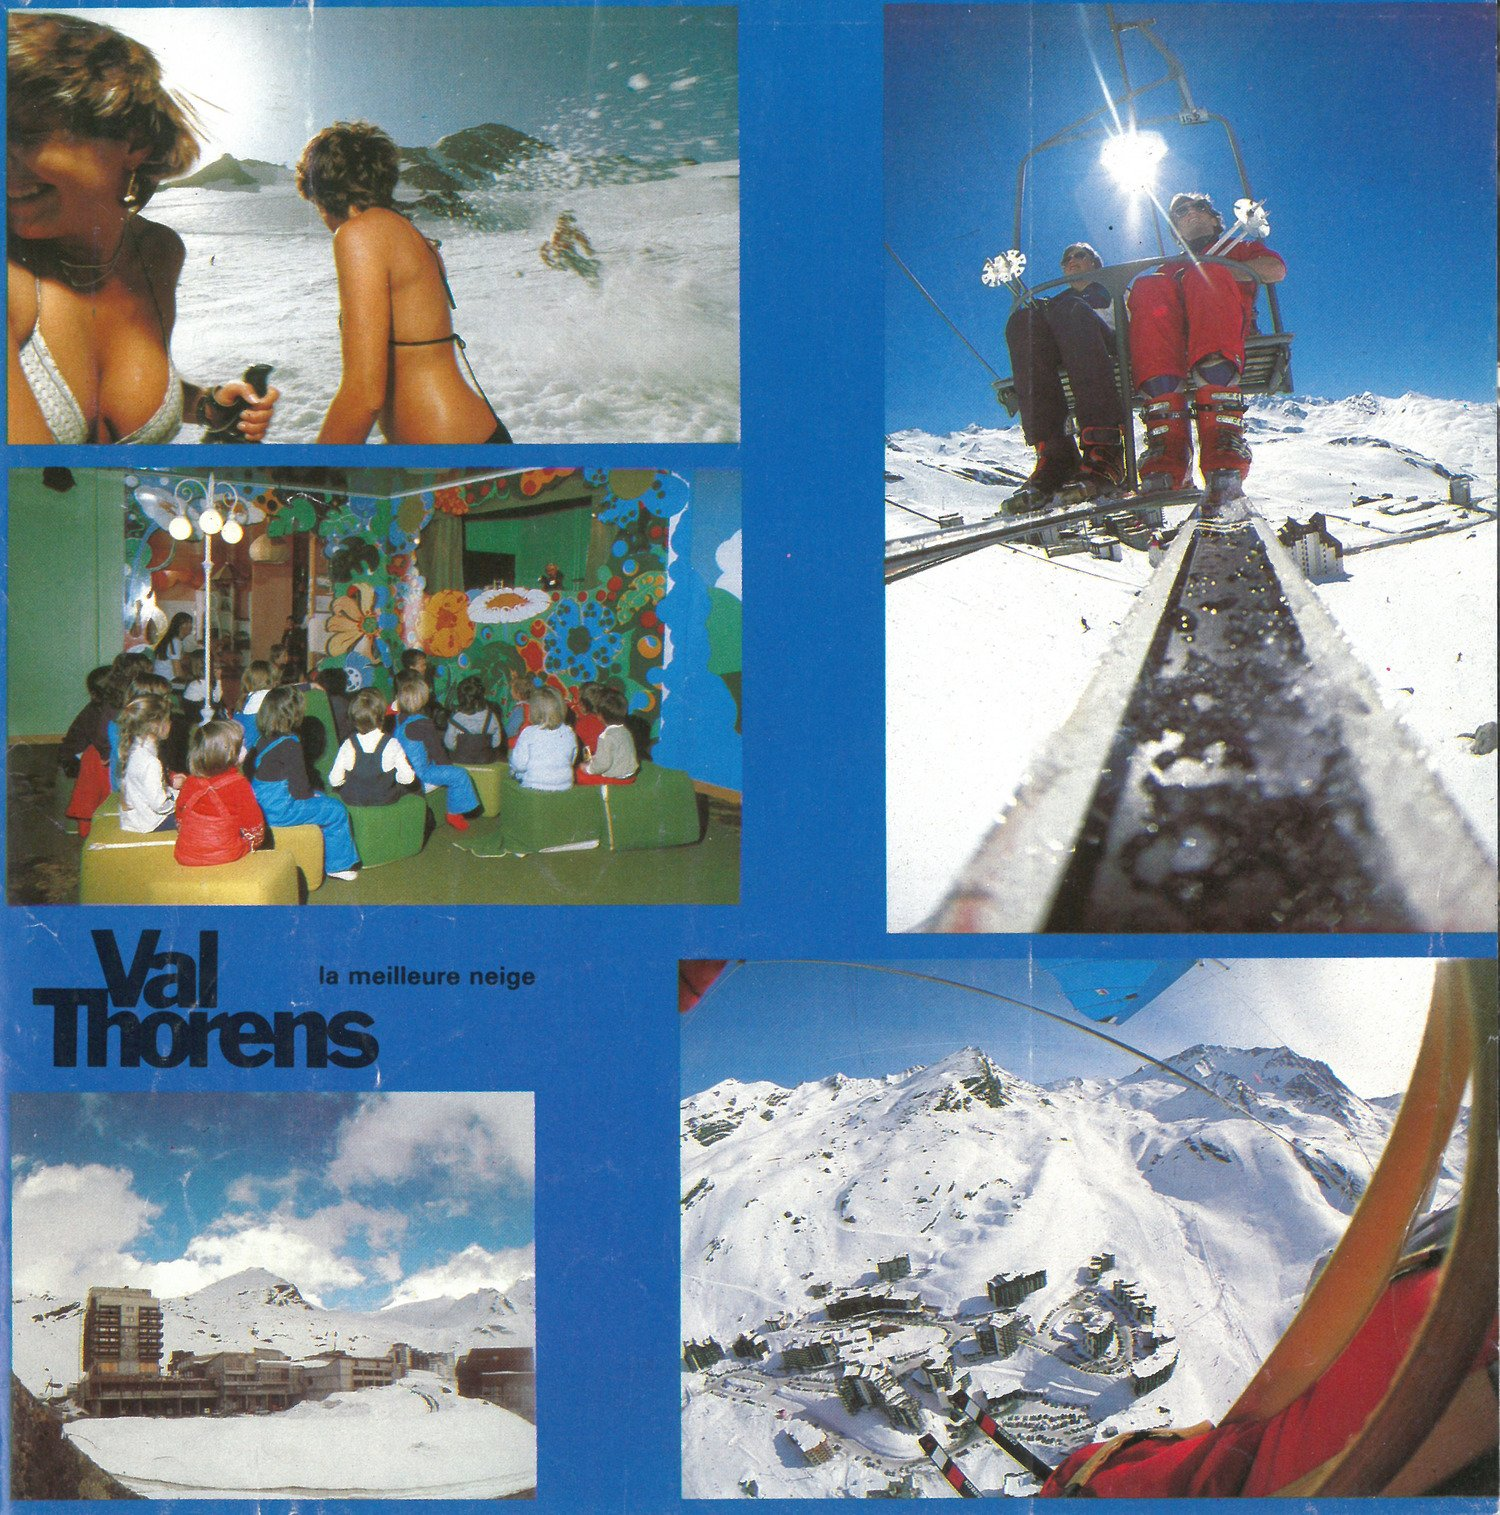 val-thorens-Foto-DR-collection%20Maxime%20Petre-skipass